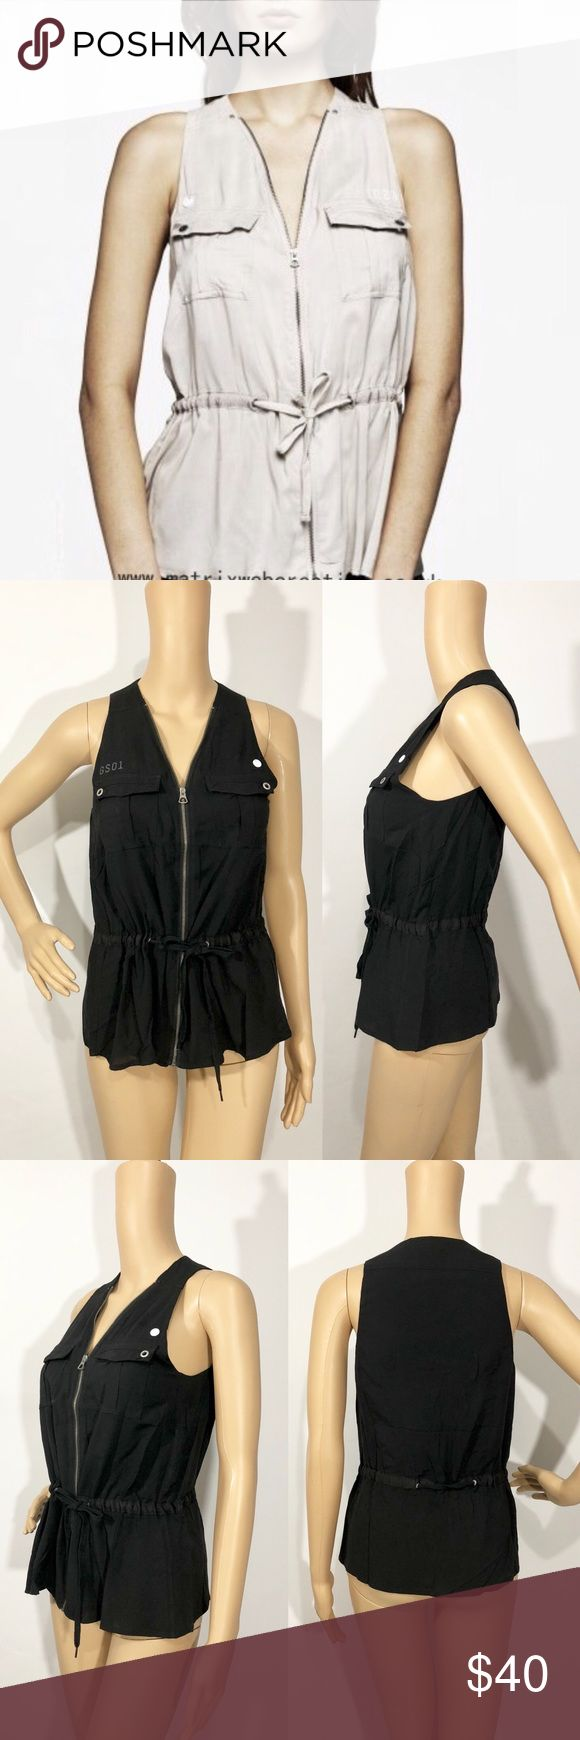 """G-STAR RAW WOMEN'S BLACK EAST CRUSADER TOP G-Star Women Black East Crusader Top Size: Small Condition: New with tags Details: V-neckline Front zip closure Flap pockets Adjustable waist Sleeveless  100% Viscose  Measurements:  Armpit to armpit: 17"""" Length from shoulder to hem: 25"""" G-Star Tops Blouses"""